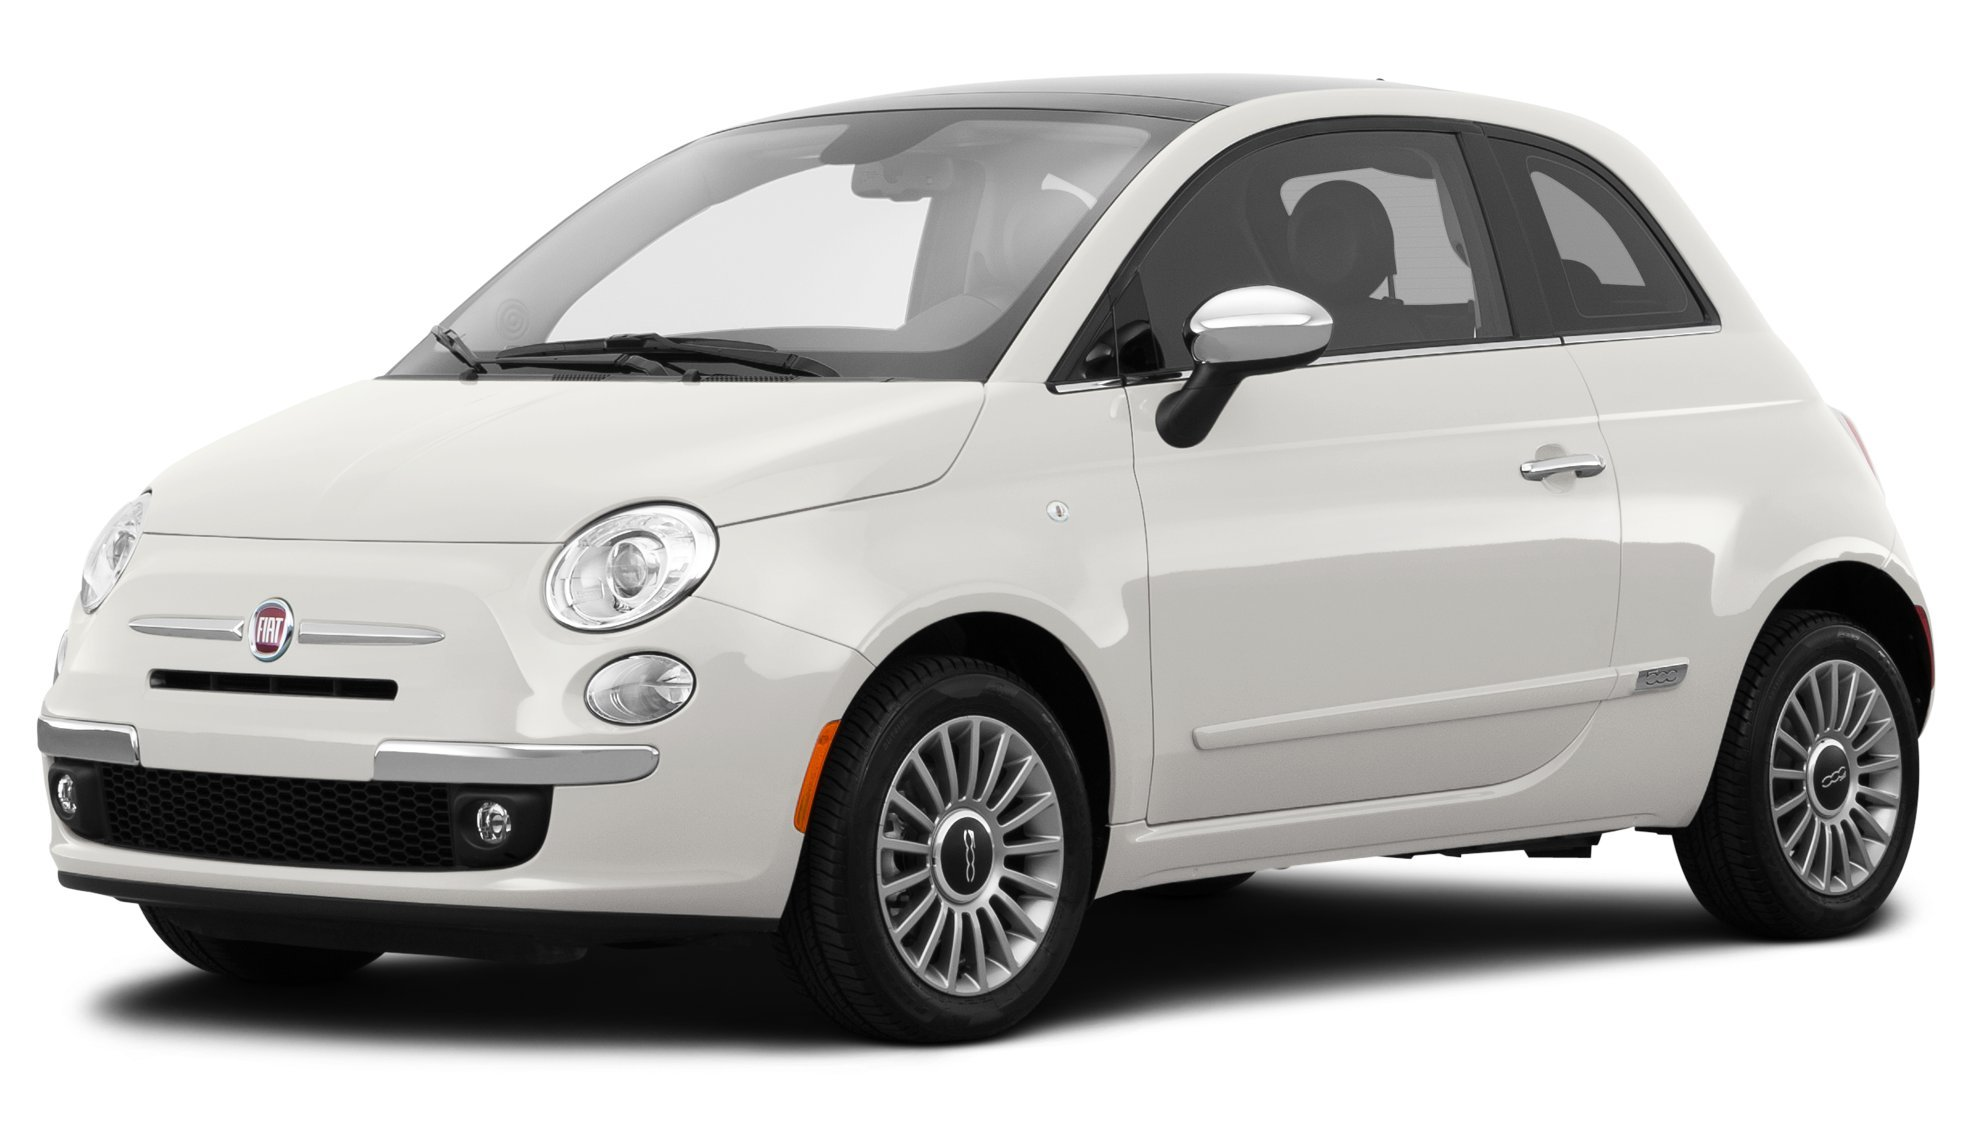 2014 fiat 500 reviews images and specs vehicles. Black Bedroom Furniture Sets. Home Design Ideas